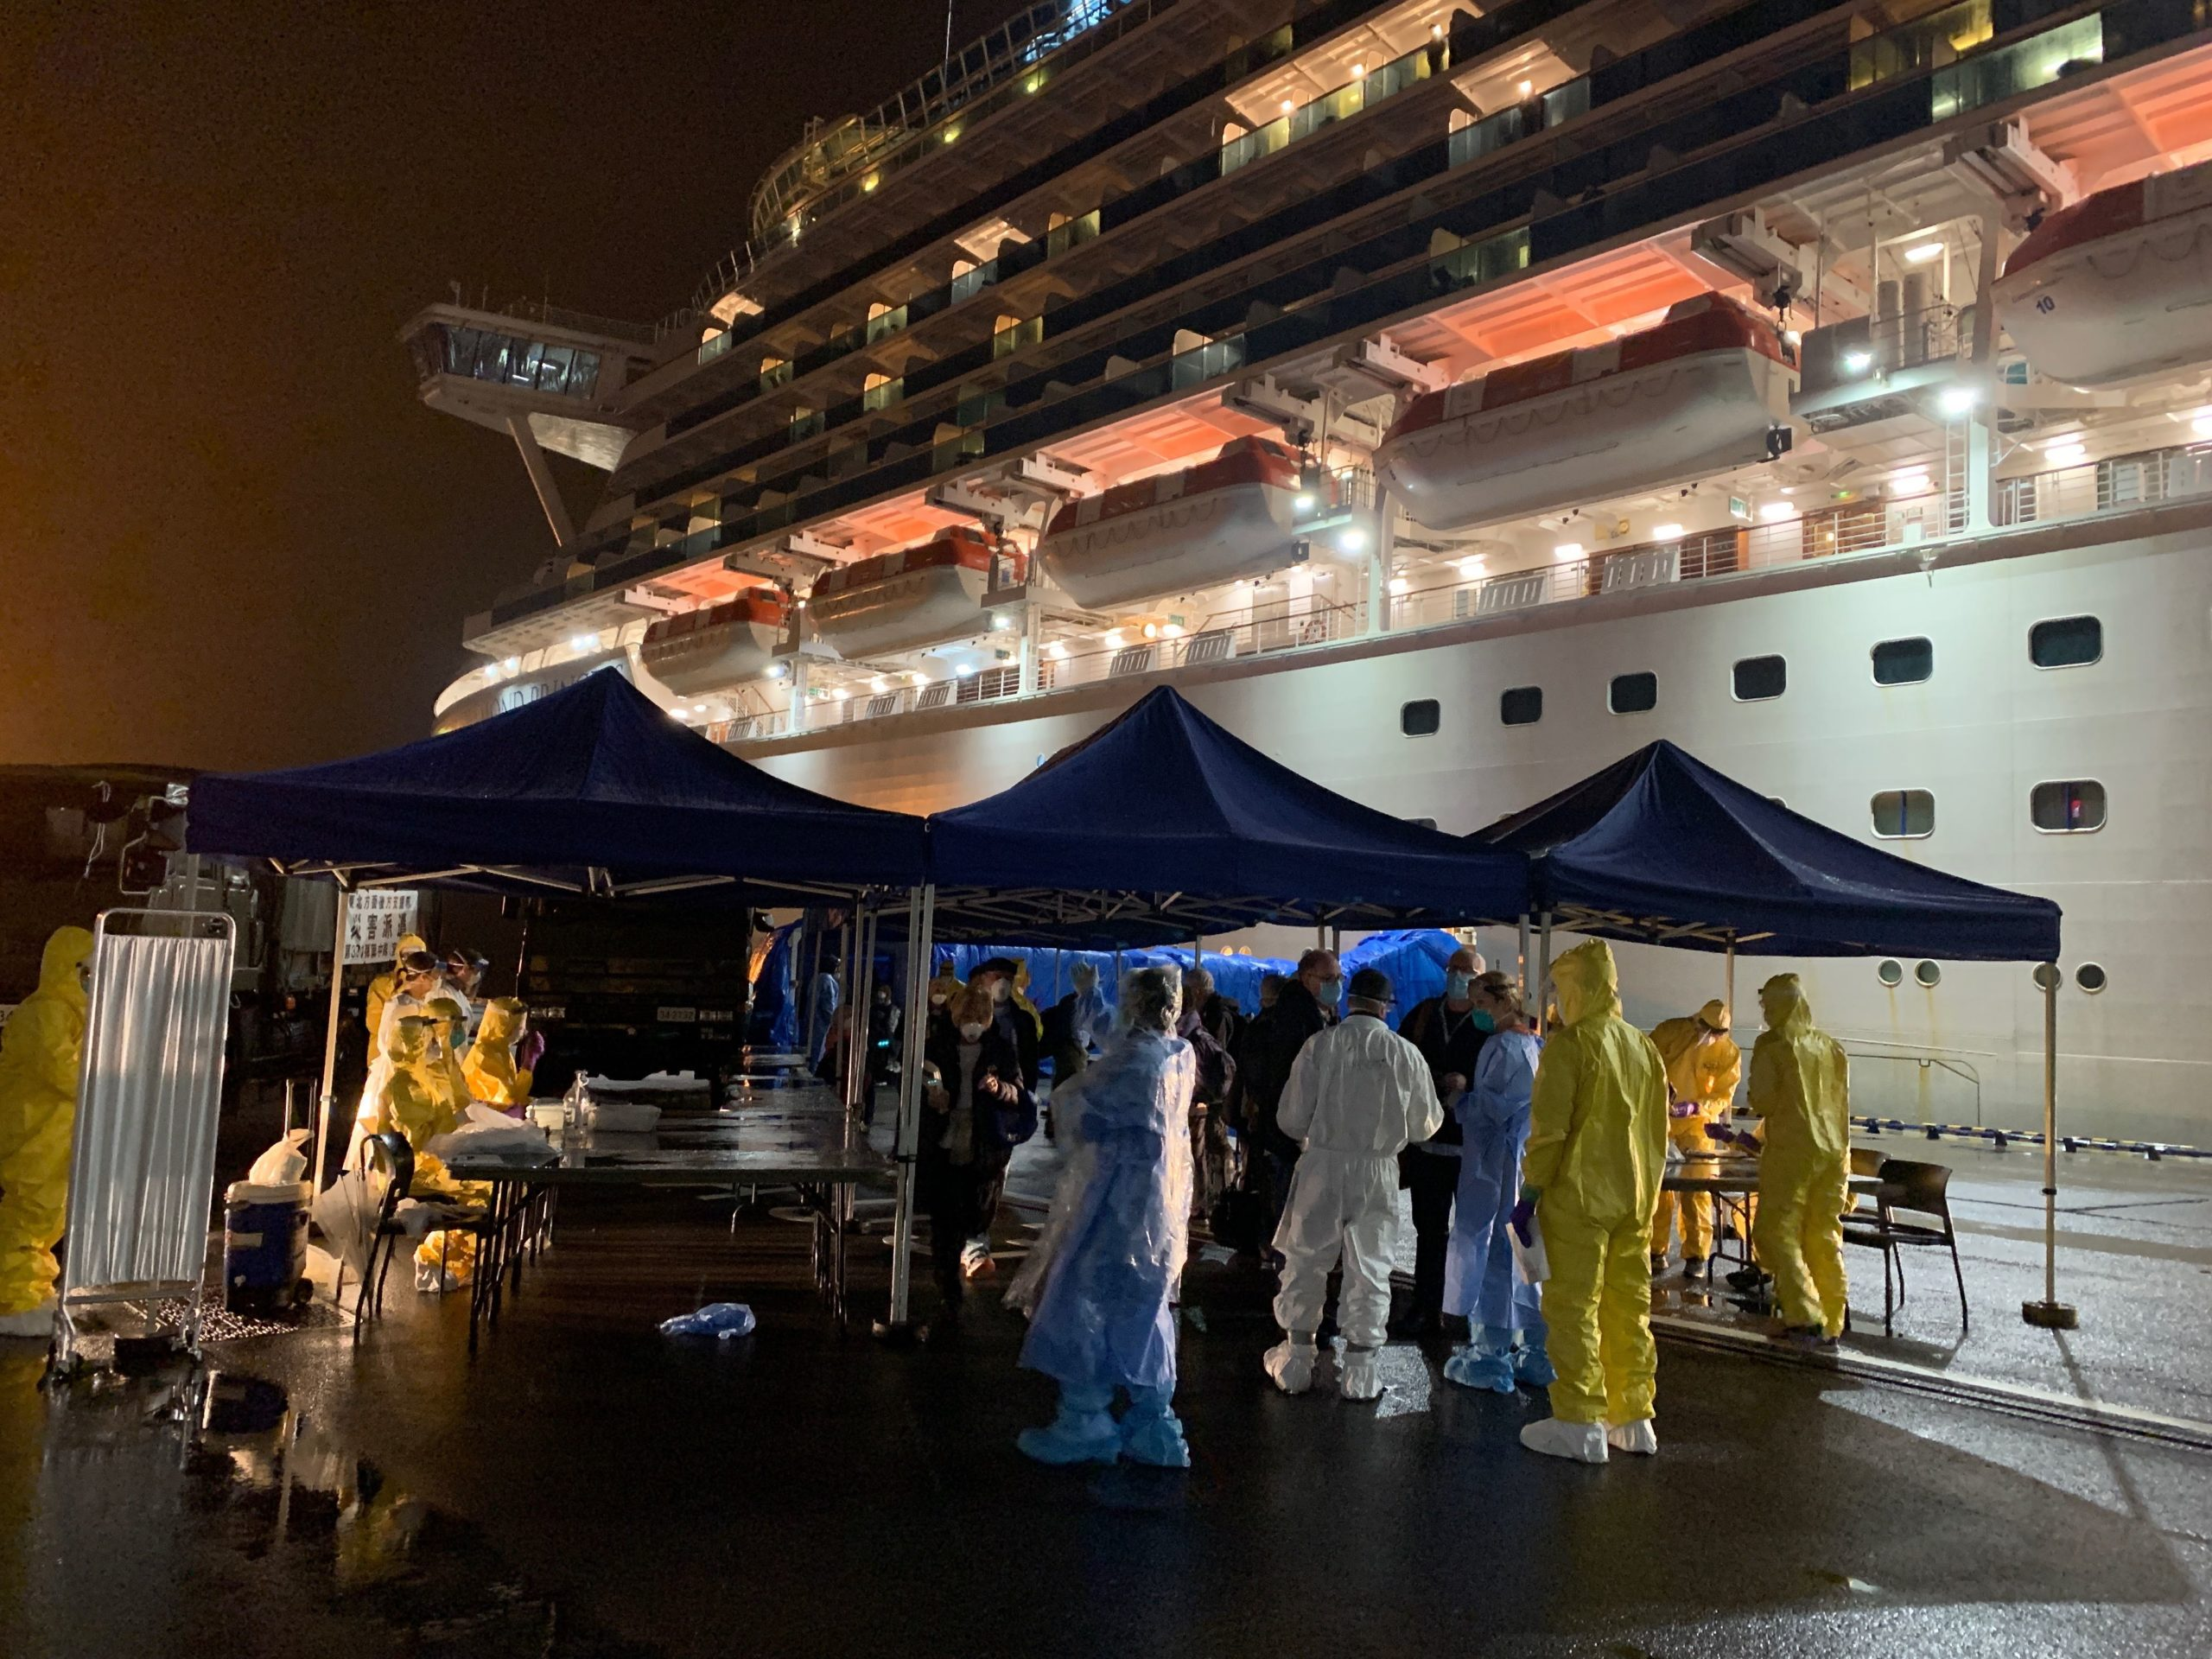 Staff at U.S. Embassy Tokyo demonstrated unfailing professionalism in assisting American passengers with repatriation from the Diamond Princess cruise ship. They continued to support Americans recovering from COVID-19 in Japanese hospitals, with welfare check-in calls and repatriation updates.